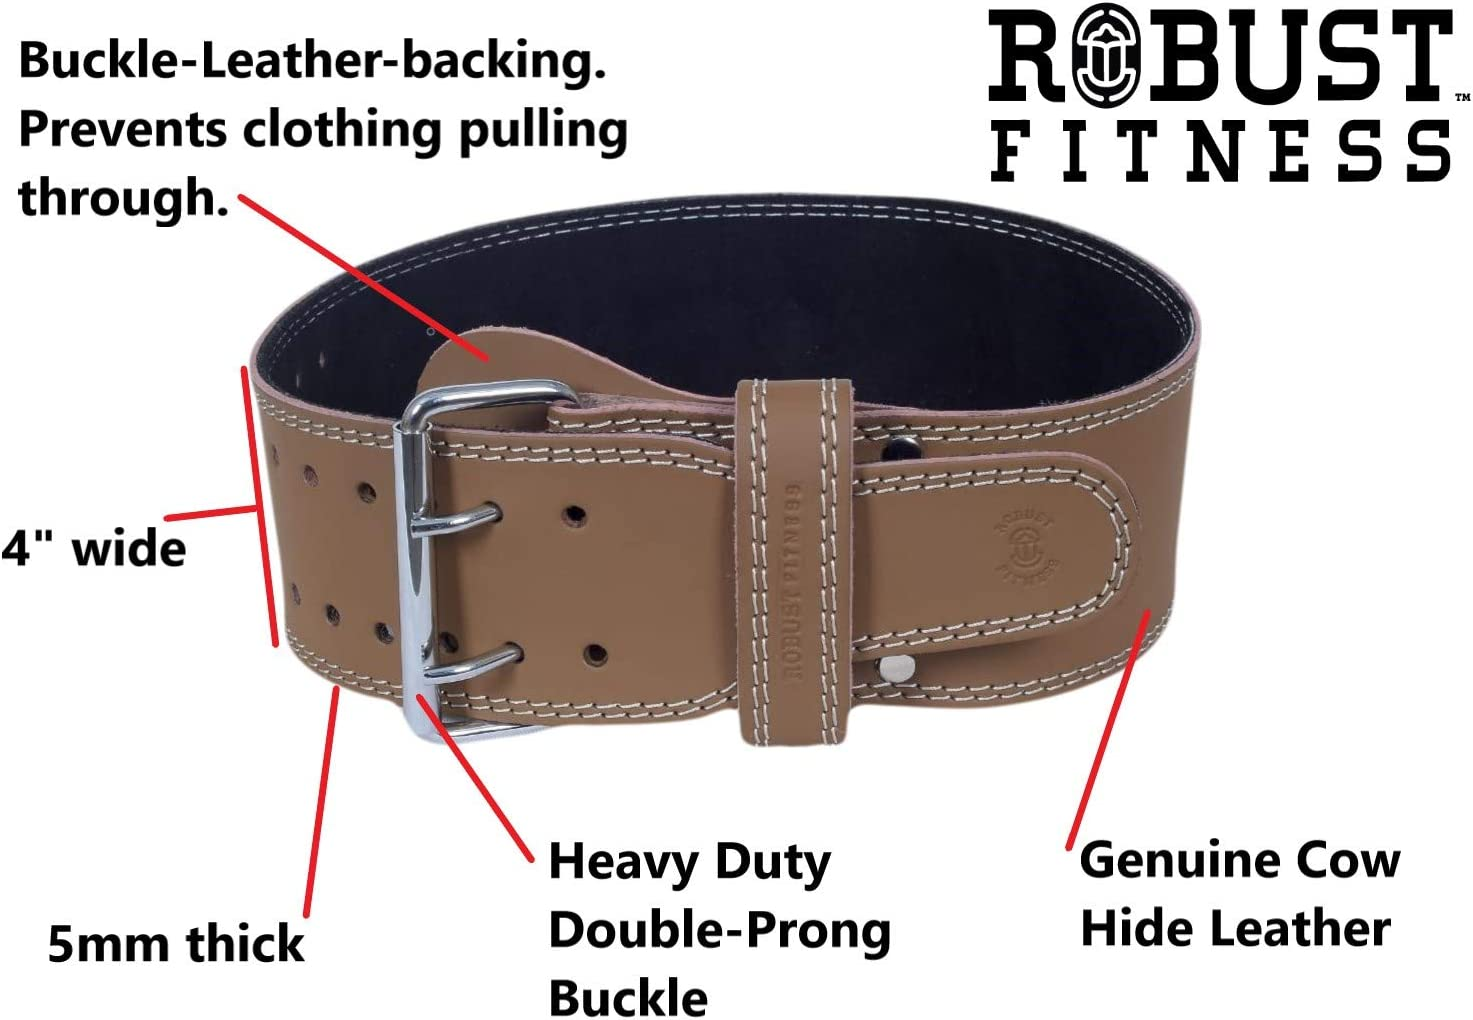 ROBUST FITNESS Genuine Leather Adjustable Weightlifting Belt, Protection Support for Back Core Workouts, Cross-Training, Olympic Power-Lifting- 4 Wide, 5mm